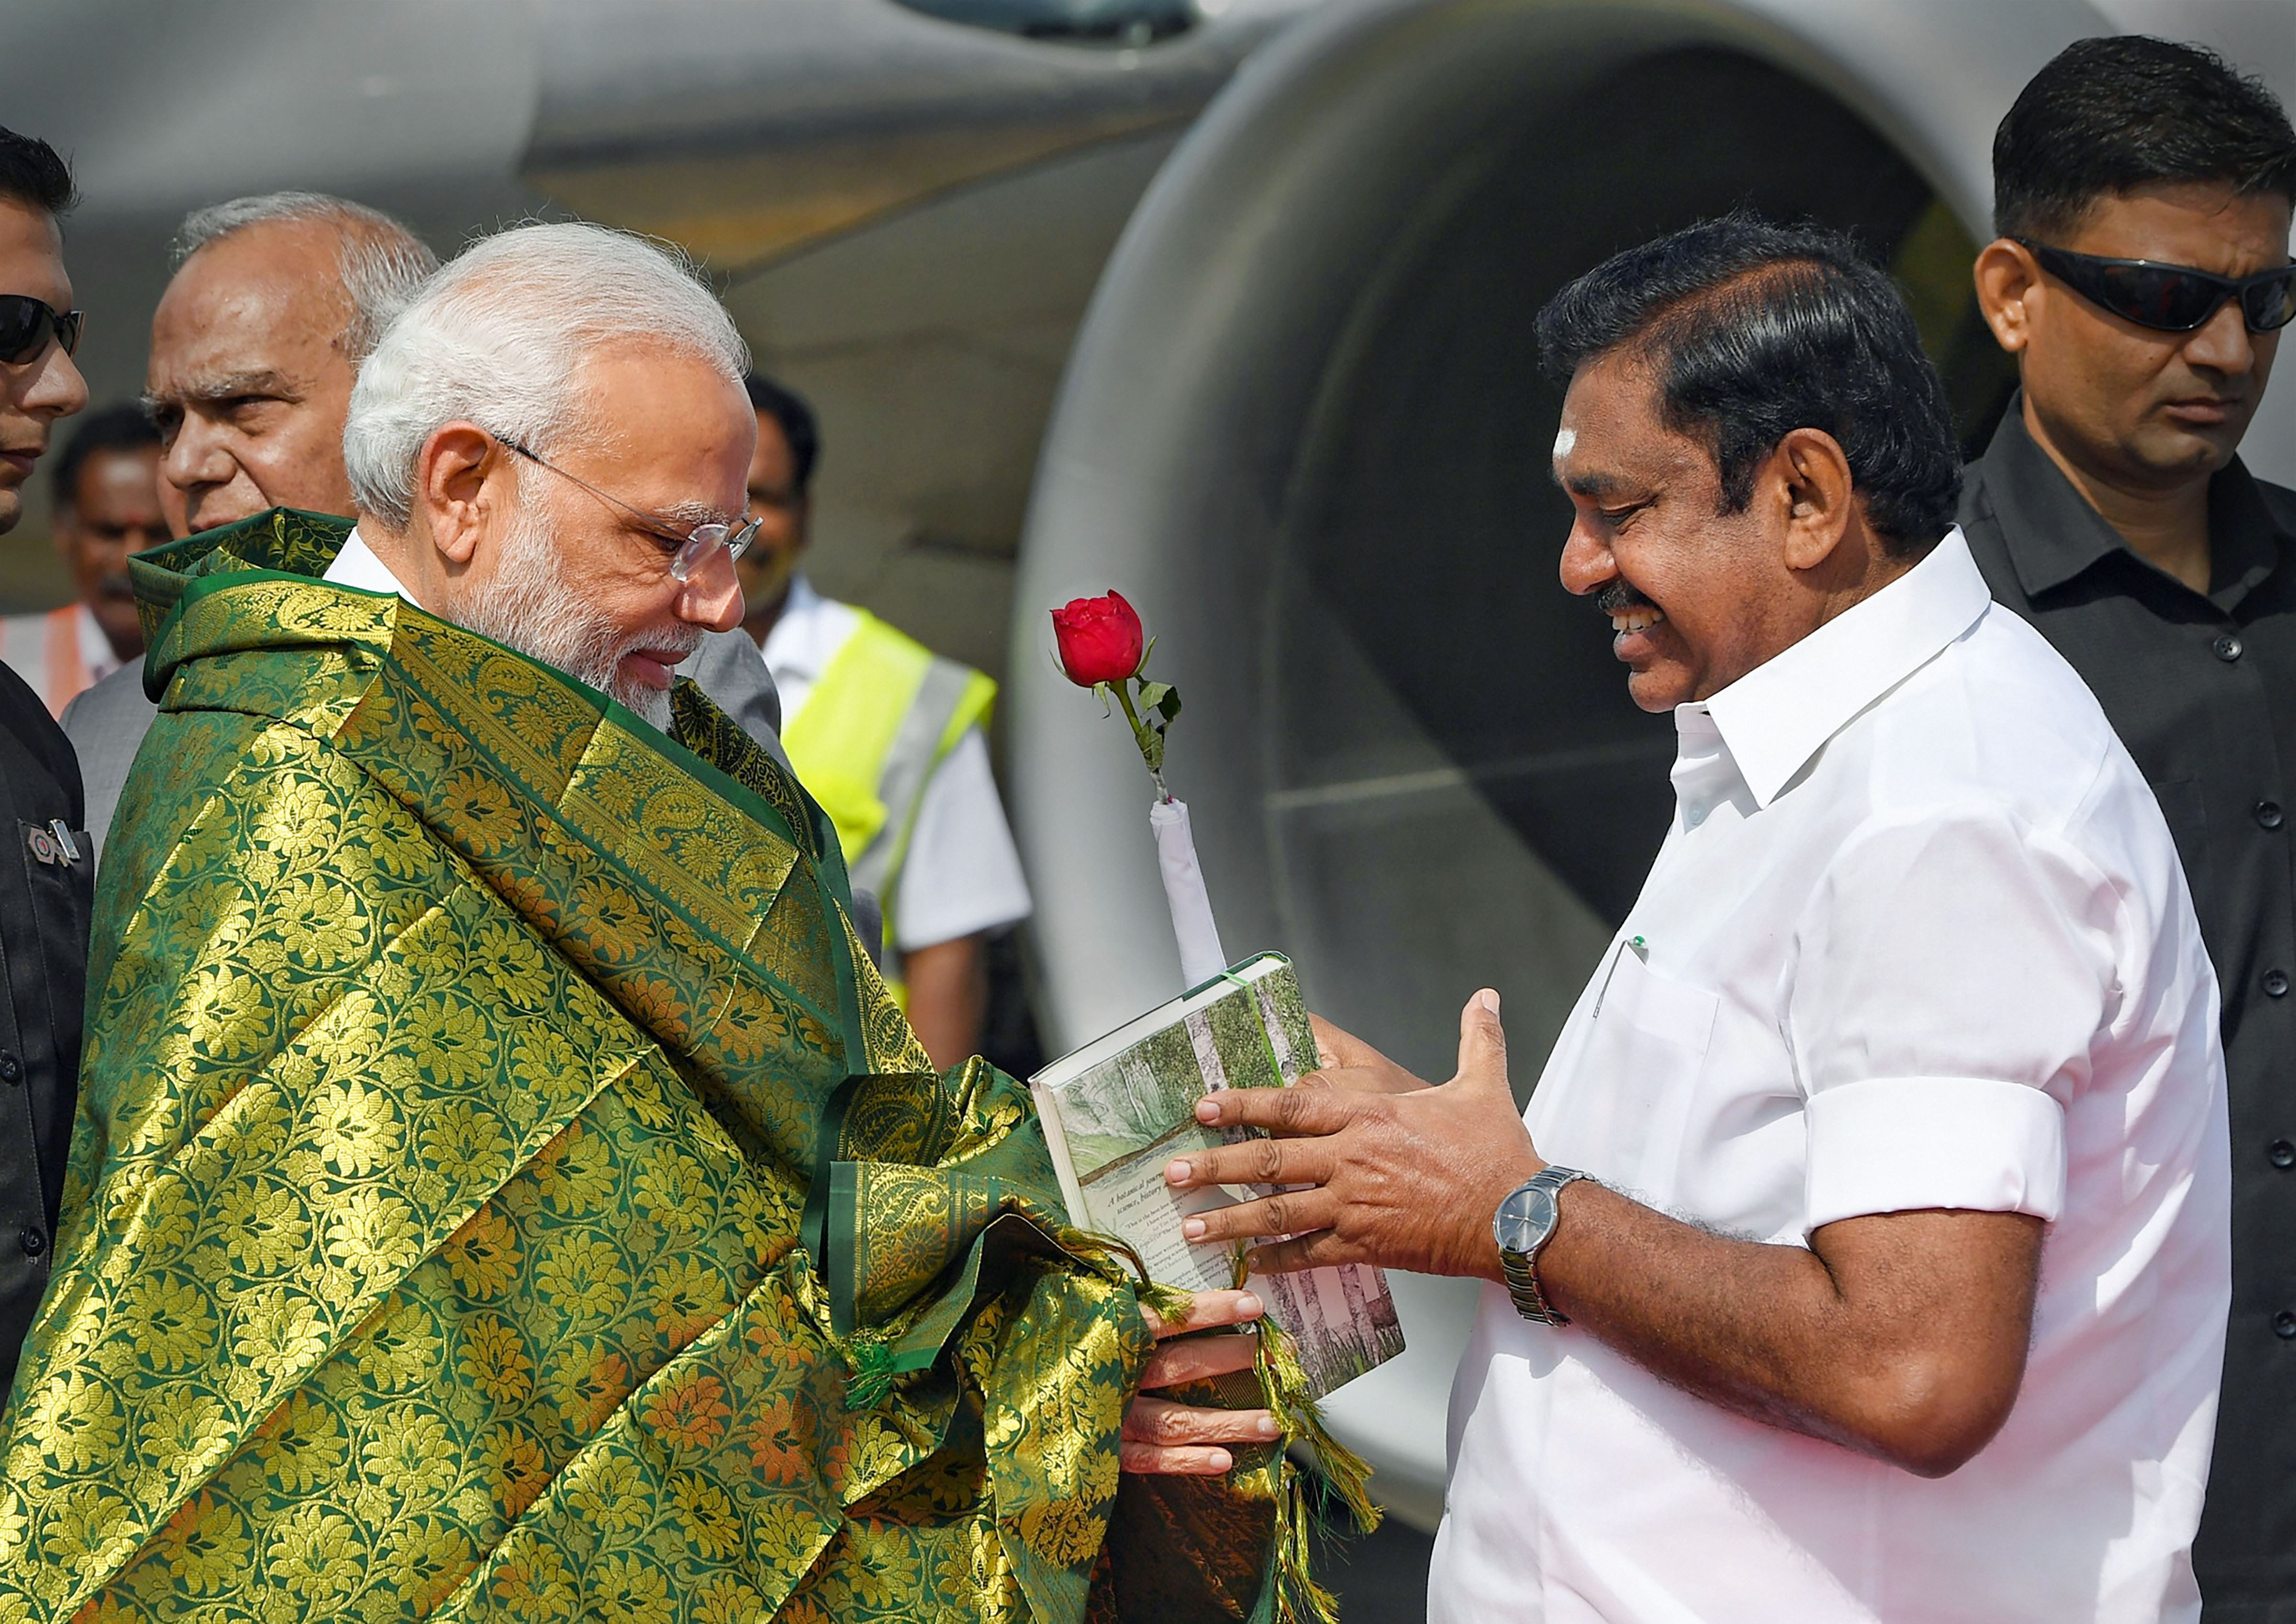 Prime Minister Narendra Modi being welcomed by Tamil Nadu chief minister Edappadi K Palaniswami on his arrival in Chennai on Monday